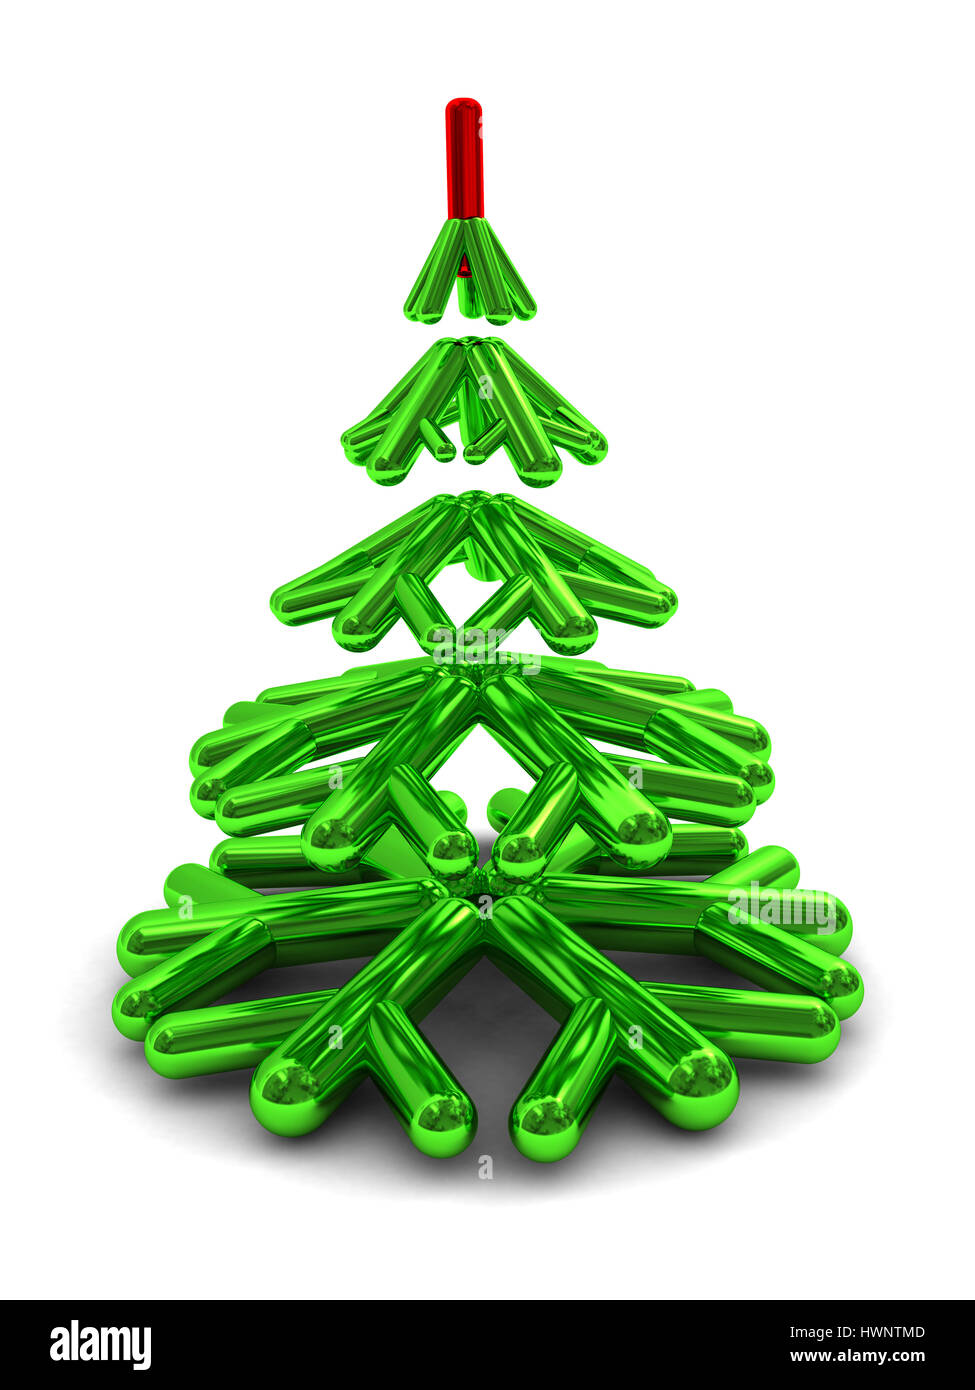 3d Illustration Of Green Christmas Tree Symbol Over White